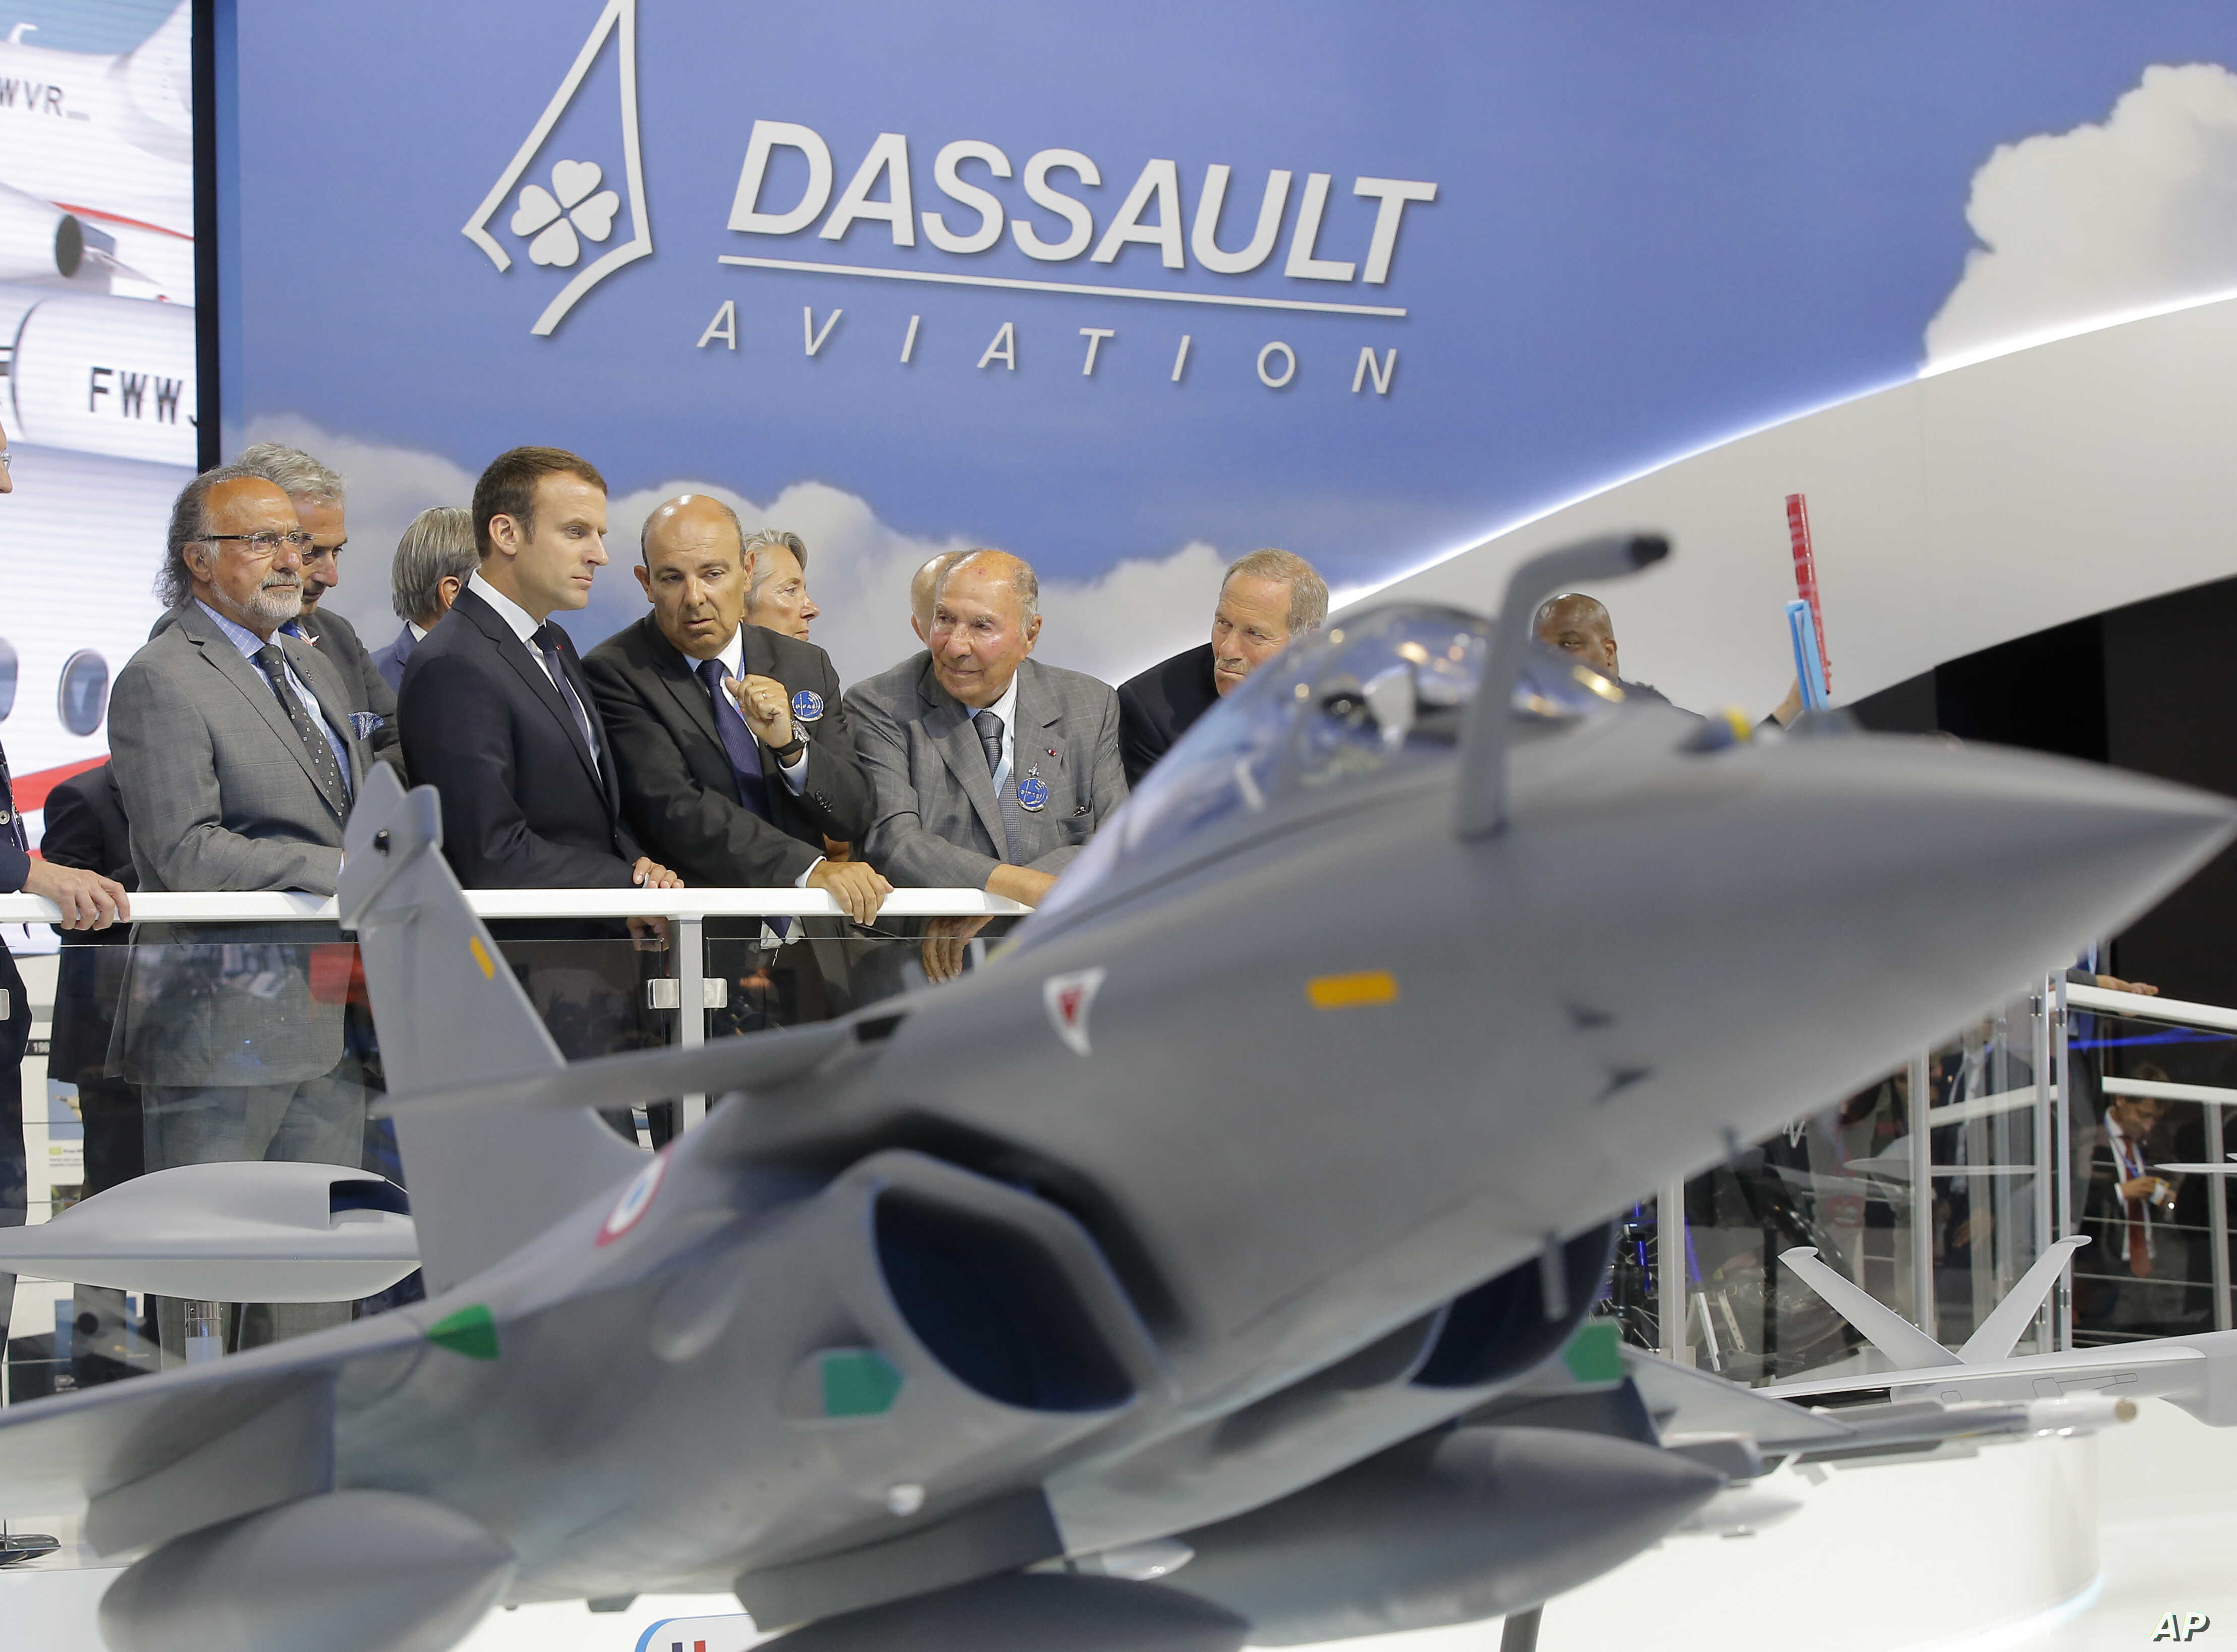 French President Emmanuel Macron, second left, listens to Dassault Aviation CEO Eric Trappier, center, while visiting the Paris Air Show in Le Bourget, June 19, 2017. Macron landed at the Bourget airfield in an Airbus A400-M military transport plane ...